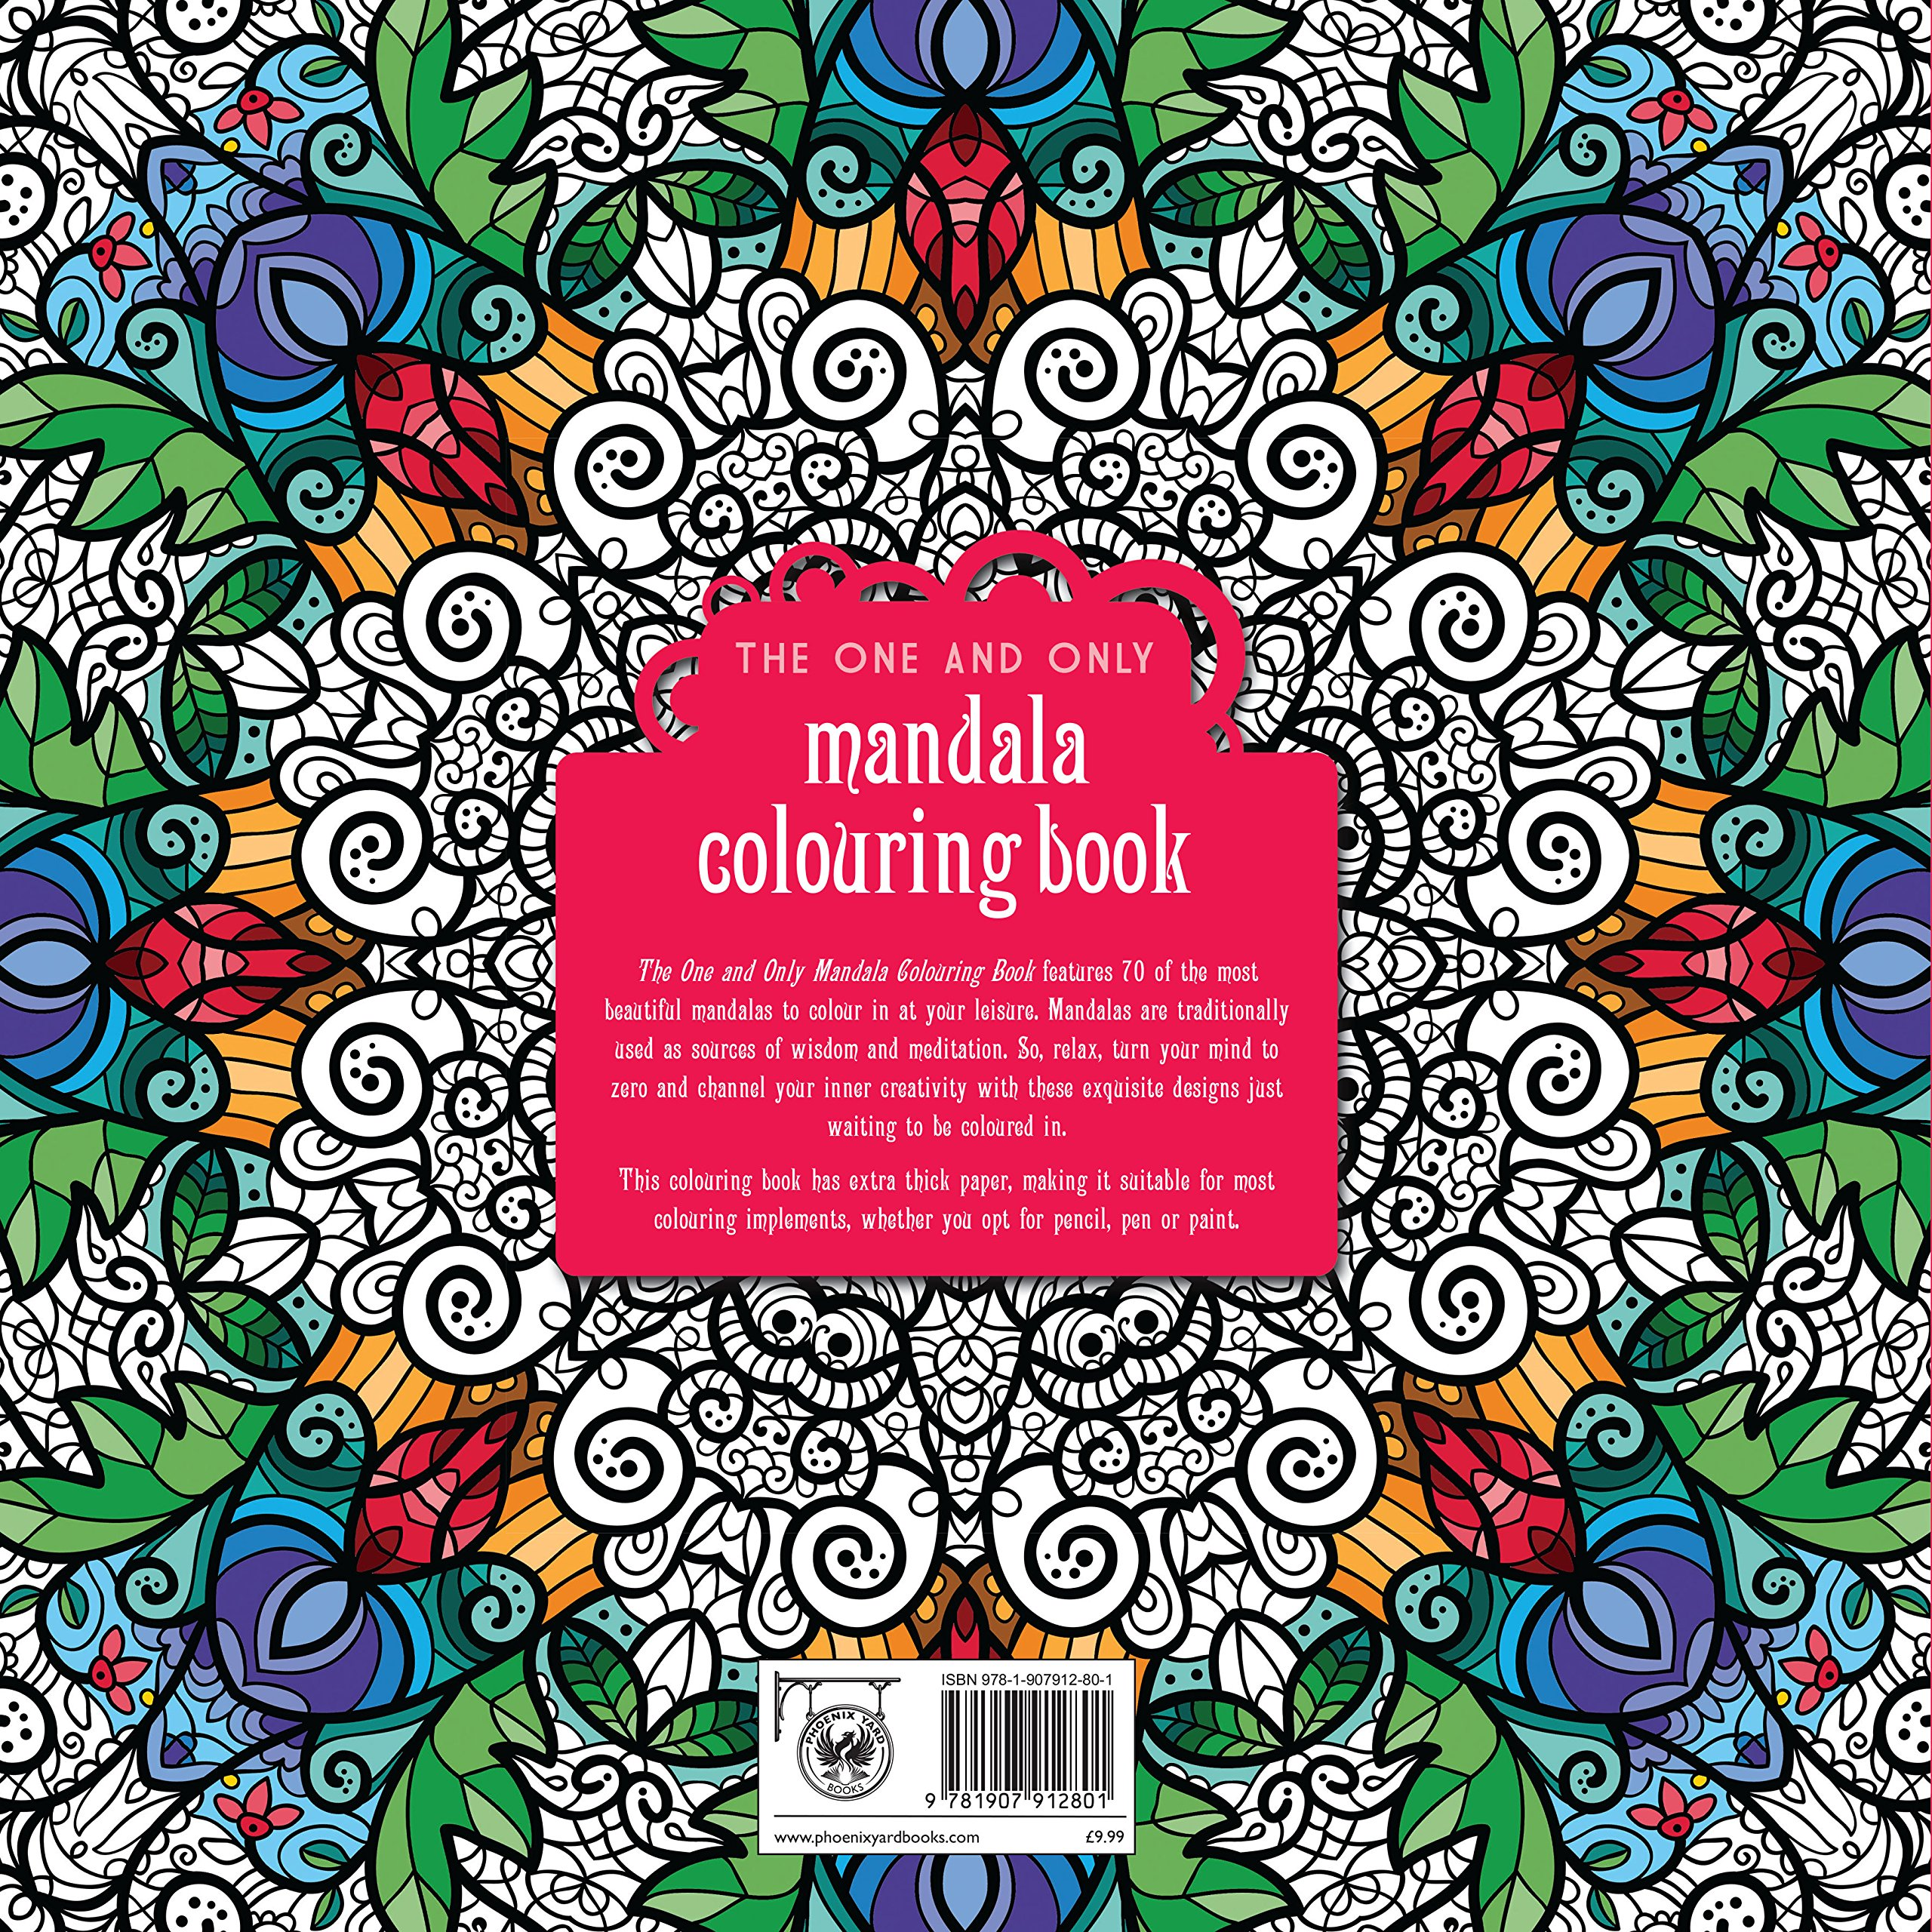 Famous Mandala Coloring Book Huge Big Coloring Books Square Color Me Books Geometric Coloring Book Youthful Coloring Books In Bulk ColouredUsborne Coloring Books The One And Only Mandala Colouring Book (One And Only Colouring ..